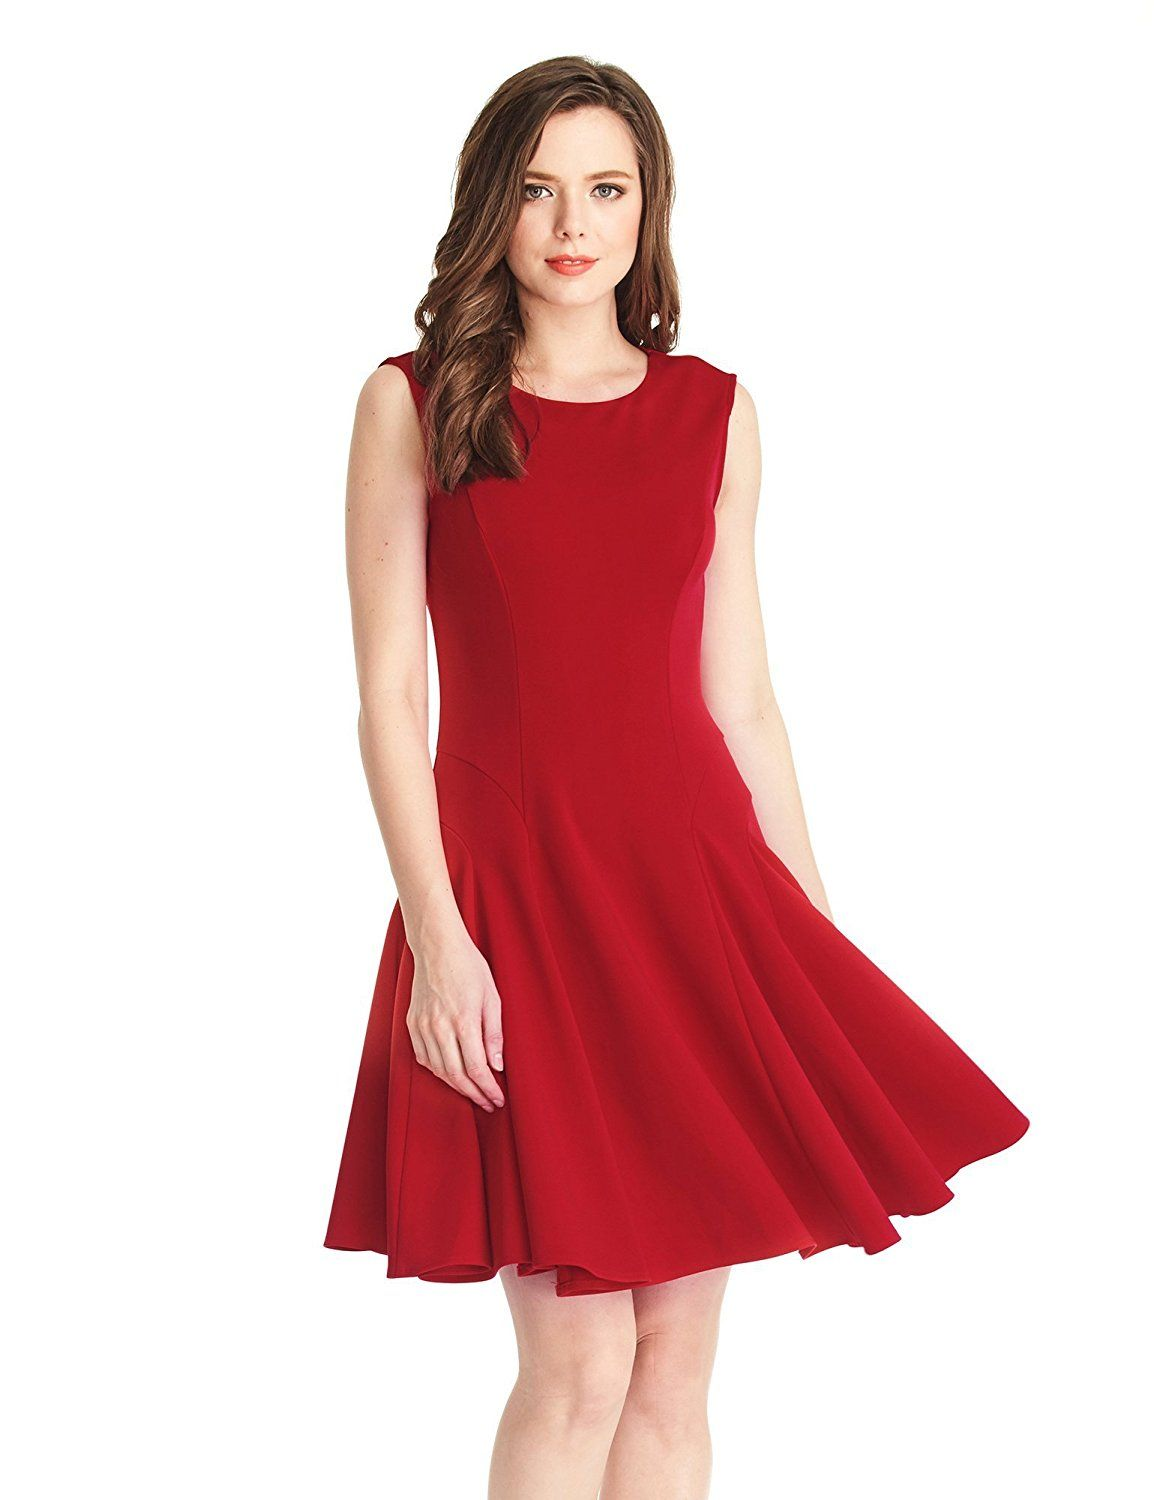 LookbookStore Women s Sleeveless Skater Semi Formal Knee Length Red Swing  Dress     Check out this great image   cocktail dresses 638401b908